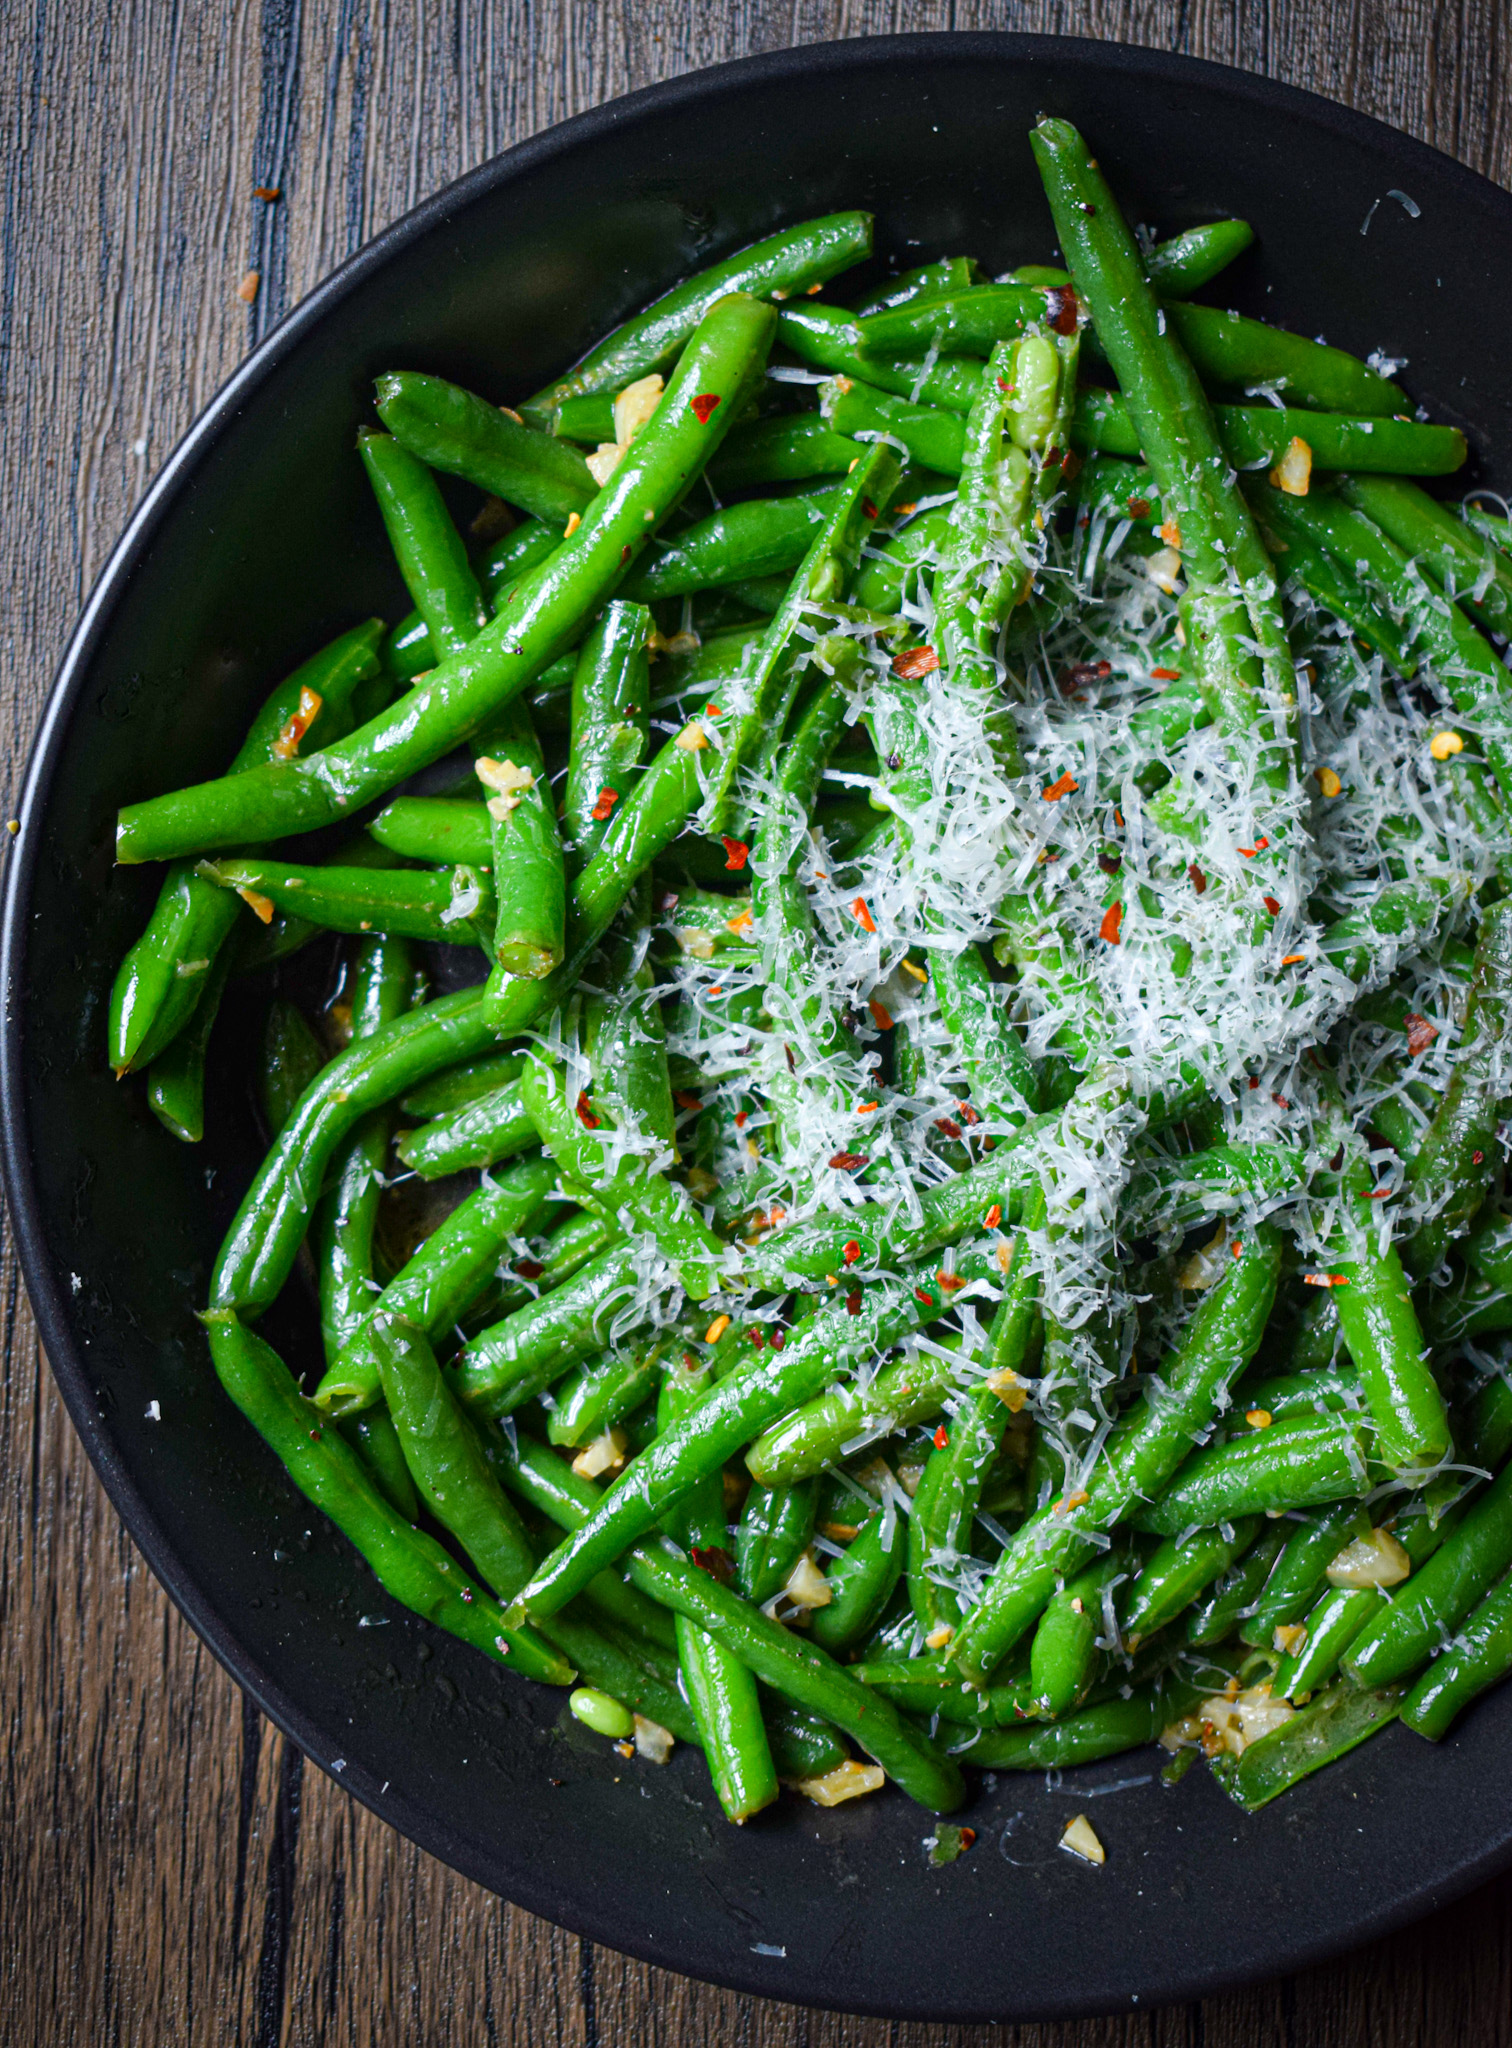 sauteed green beans with garlic and butter topped with parmesan cheese and red pepper flakes